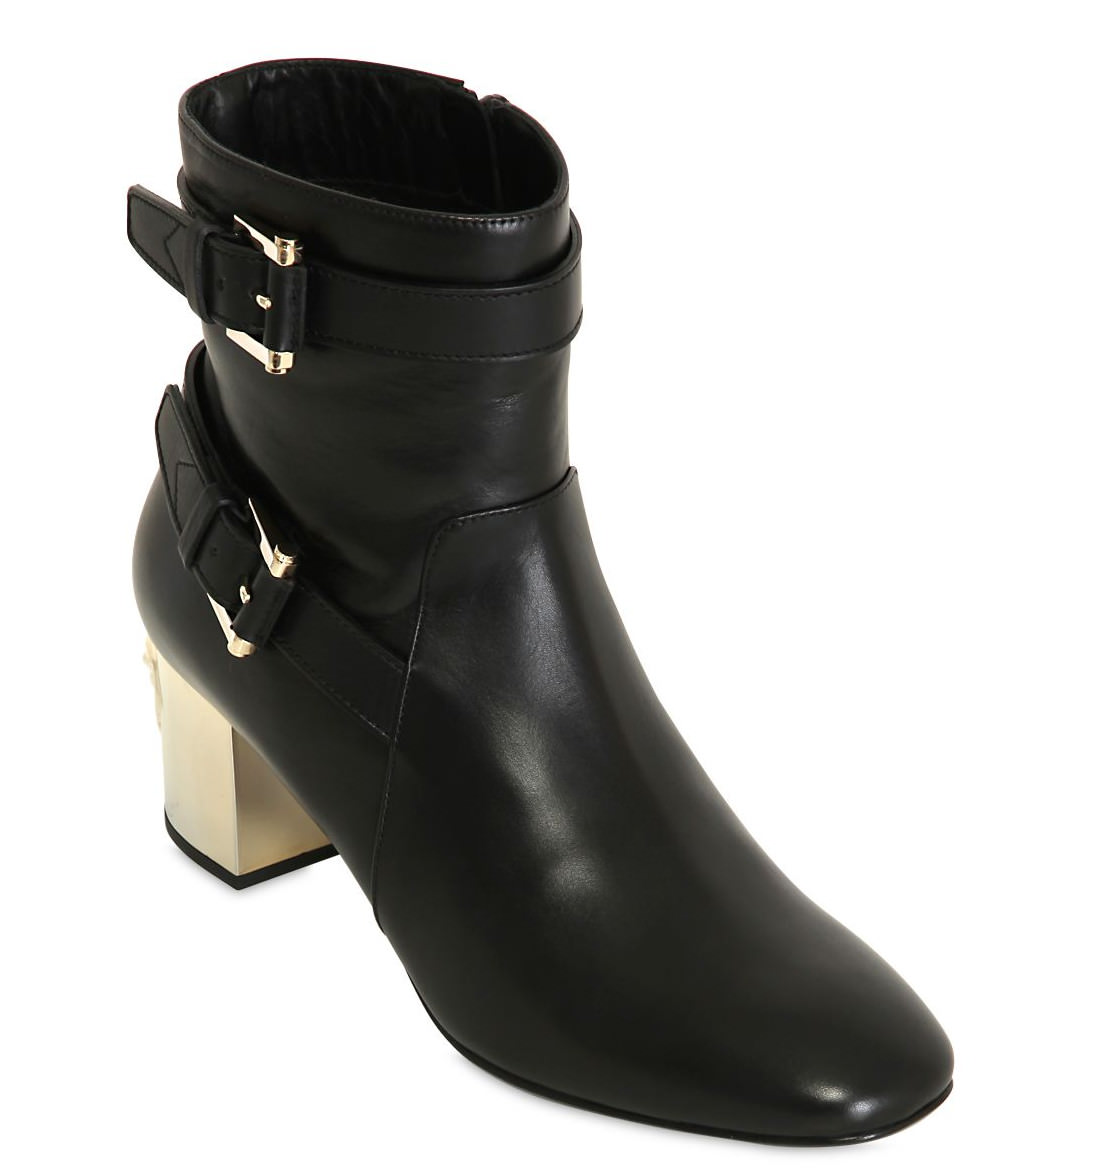 medusa heel leather ankle boots